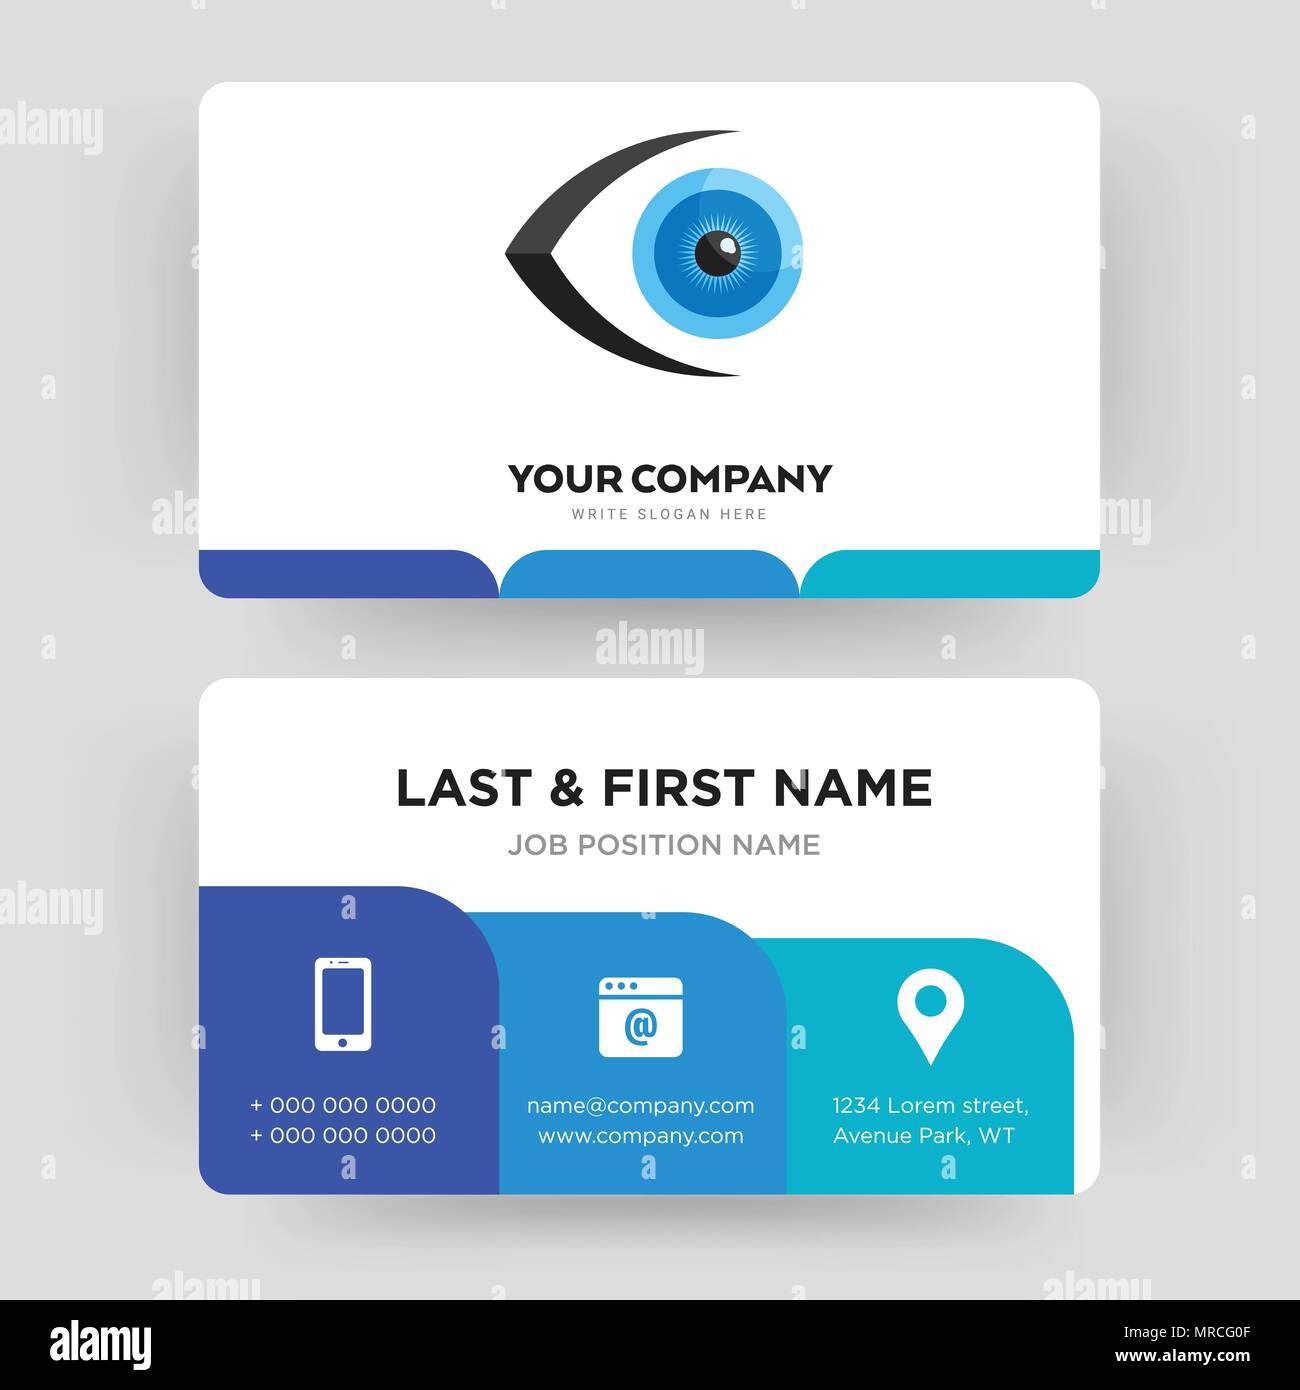 eyeball business card design template visiting for your company